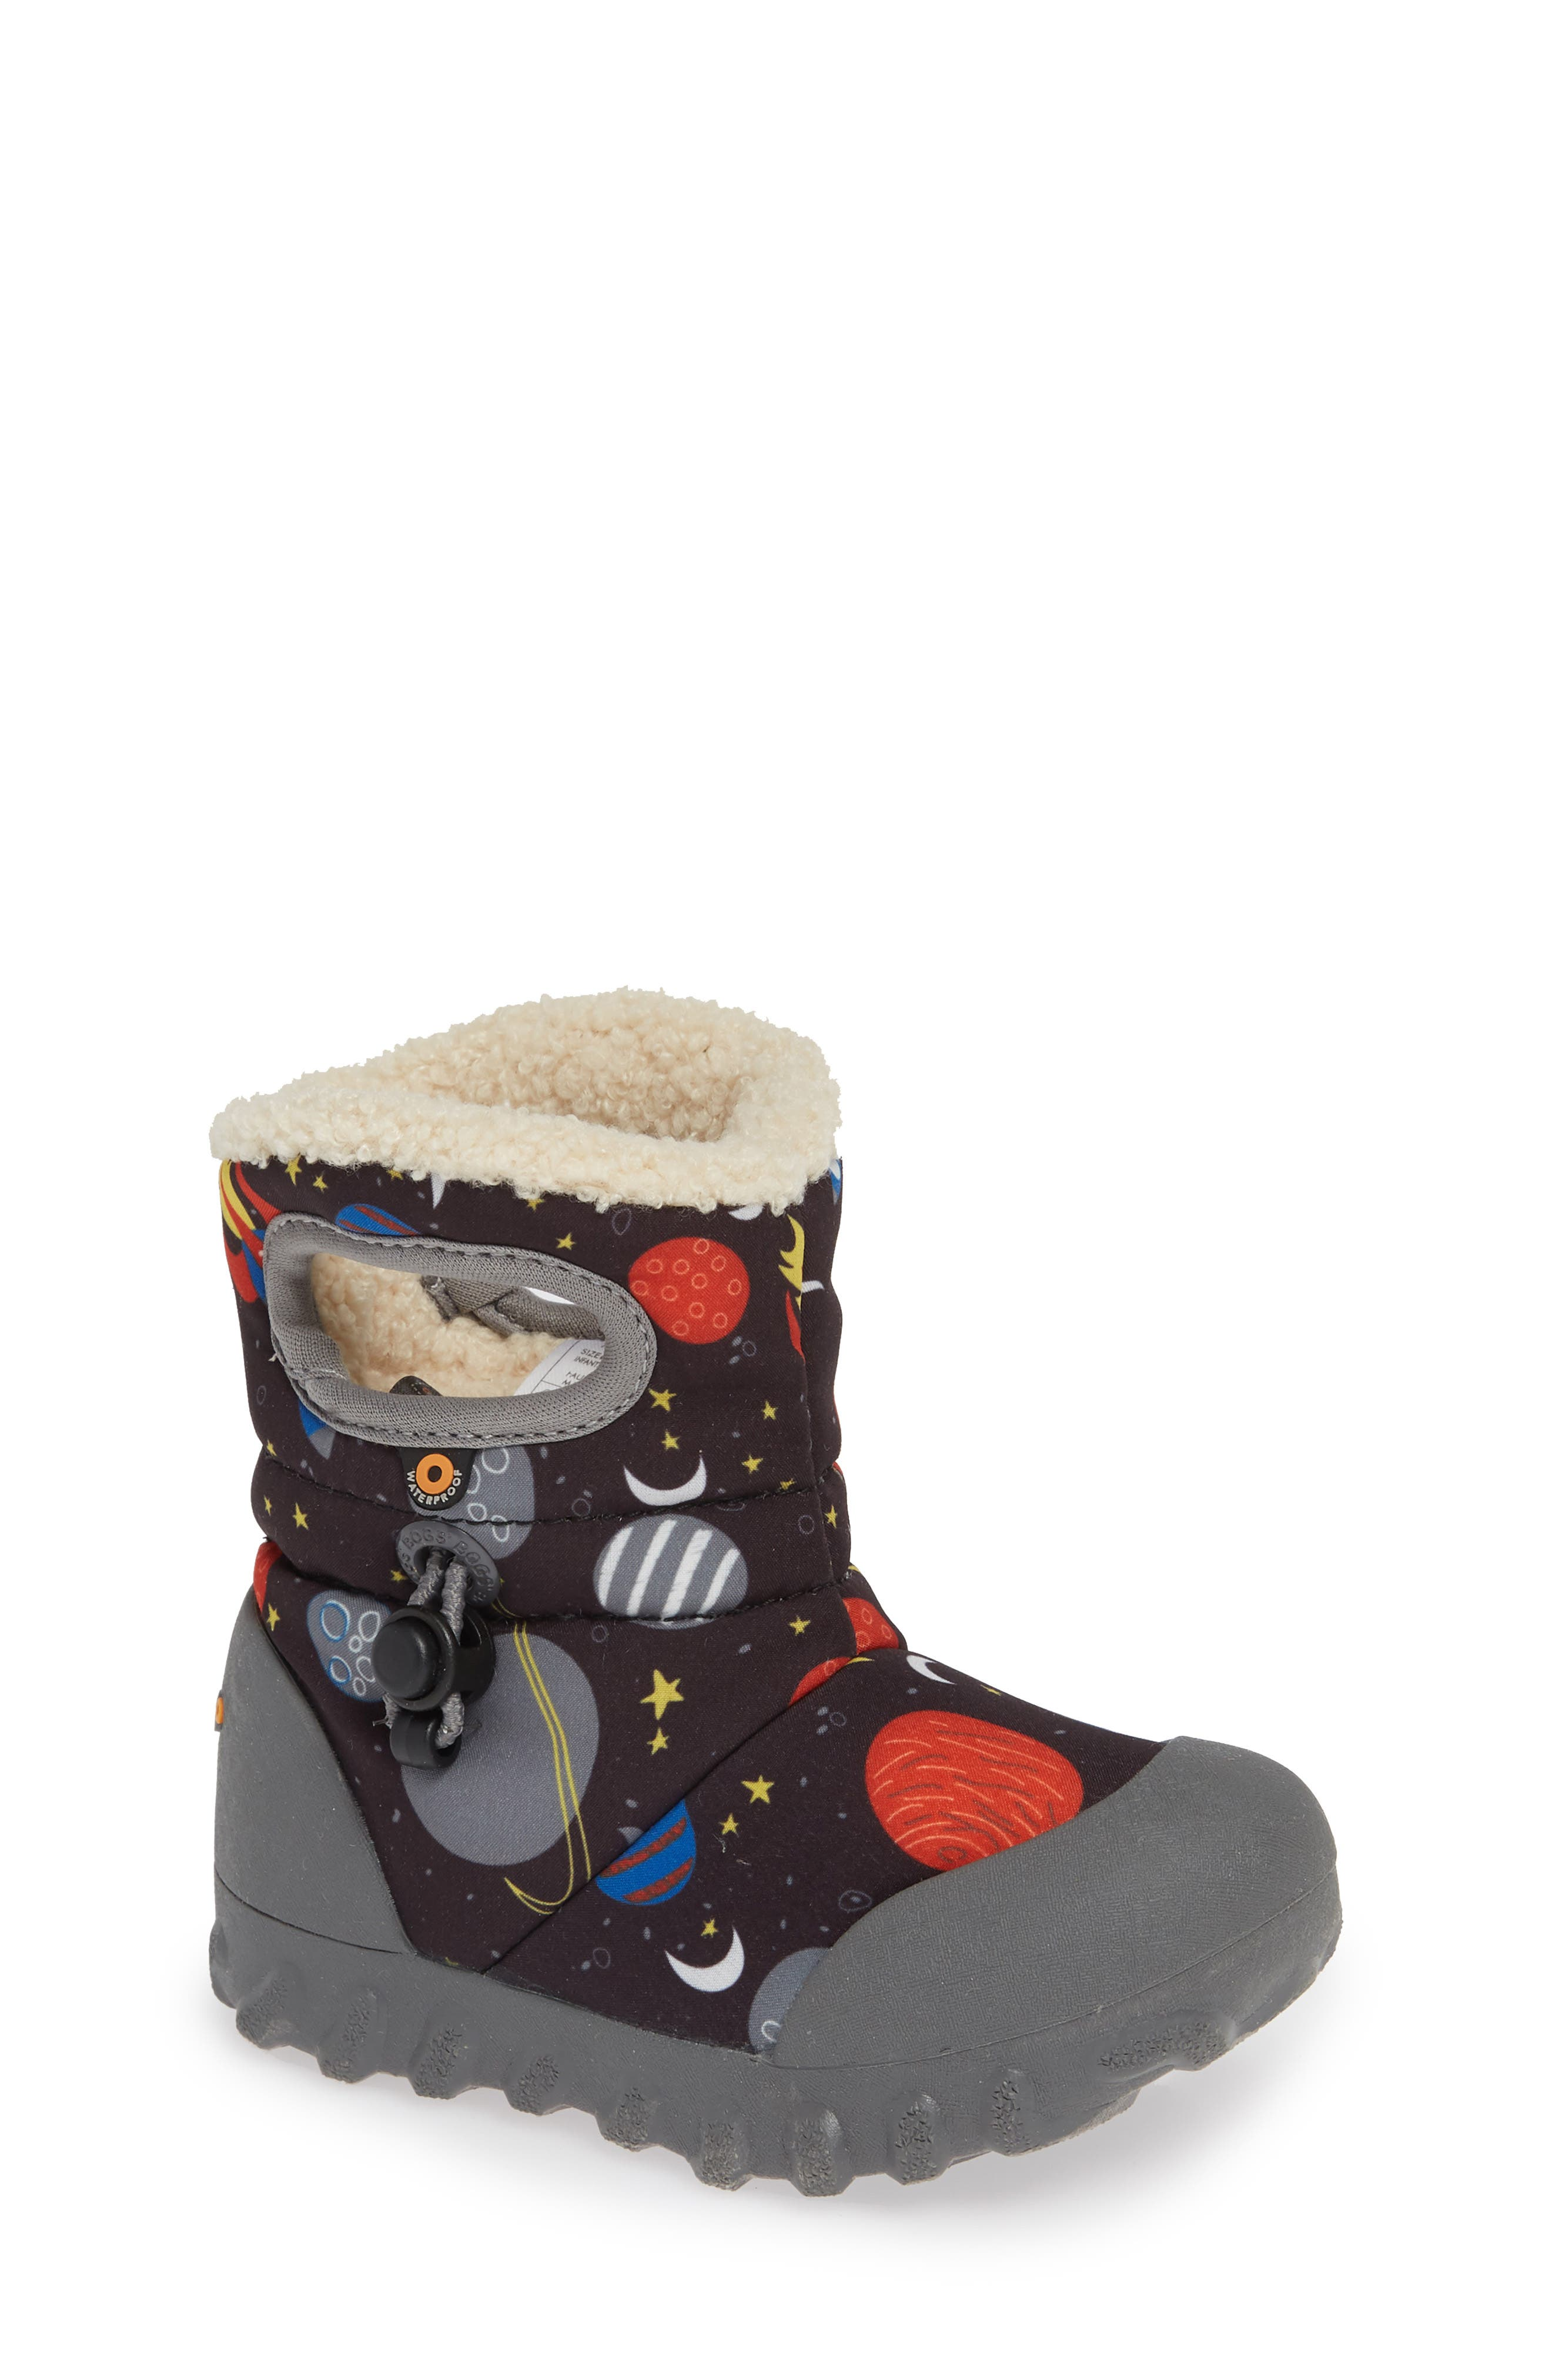 BOGS, B-MOC Space Waterproof Insulated Faux Fur Boot, Main thumbnail 1, color, BLACK MULTI